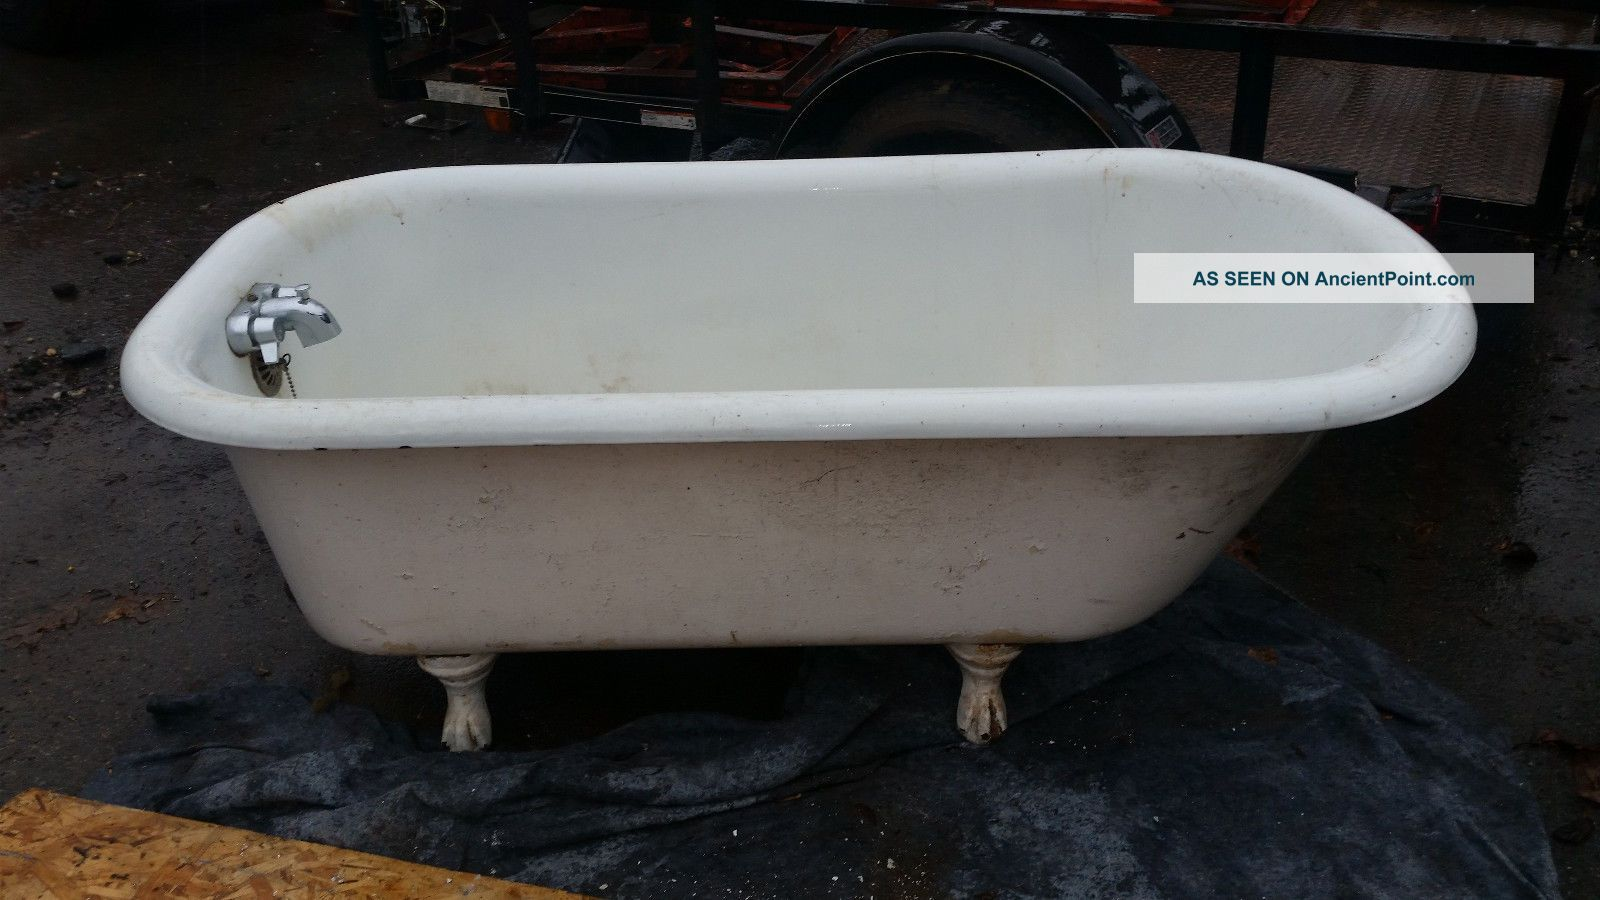 Vintage Clawfoot Tub With Feet.  5 Foot Long,  Ssm Co.  P W Made In 1922 Bath Tubs photo